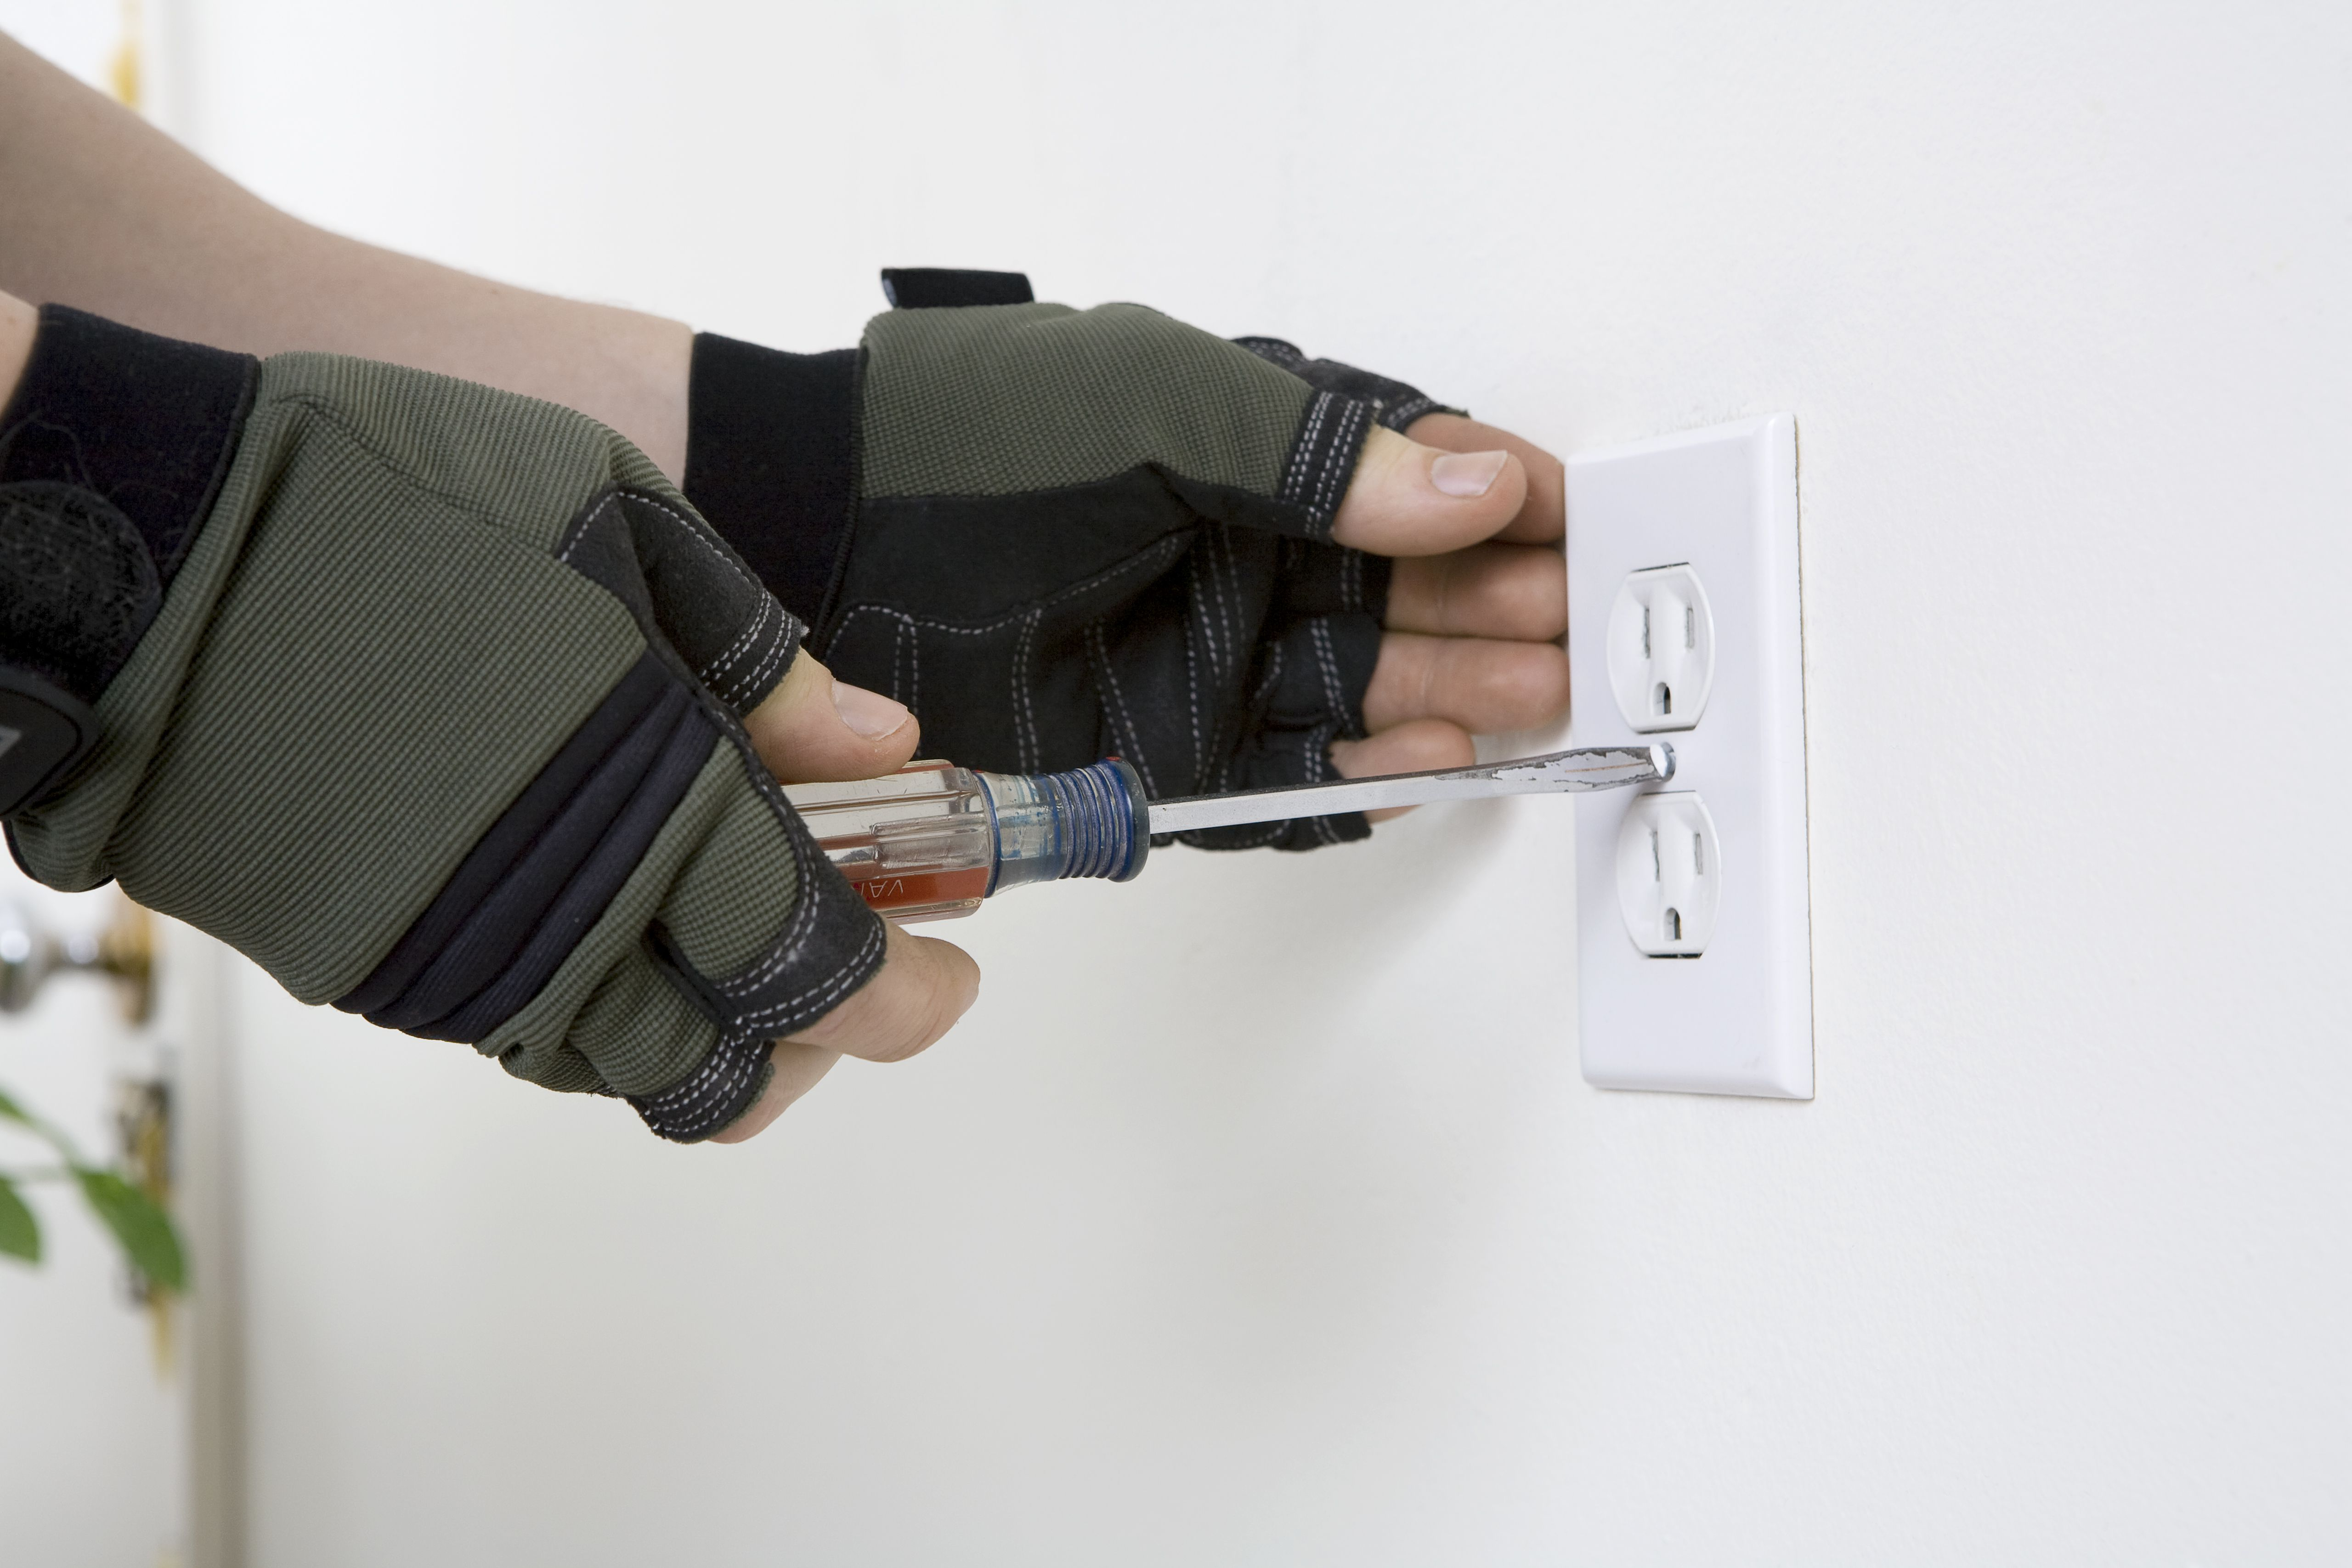 How To Side Wire And Bend For An Electrical Outlet Outletspvc Insulation Copper Wirewire